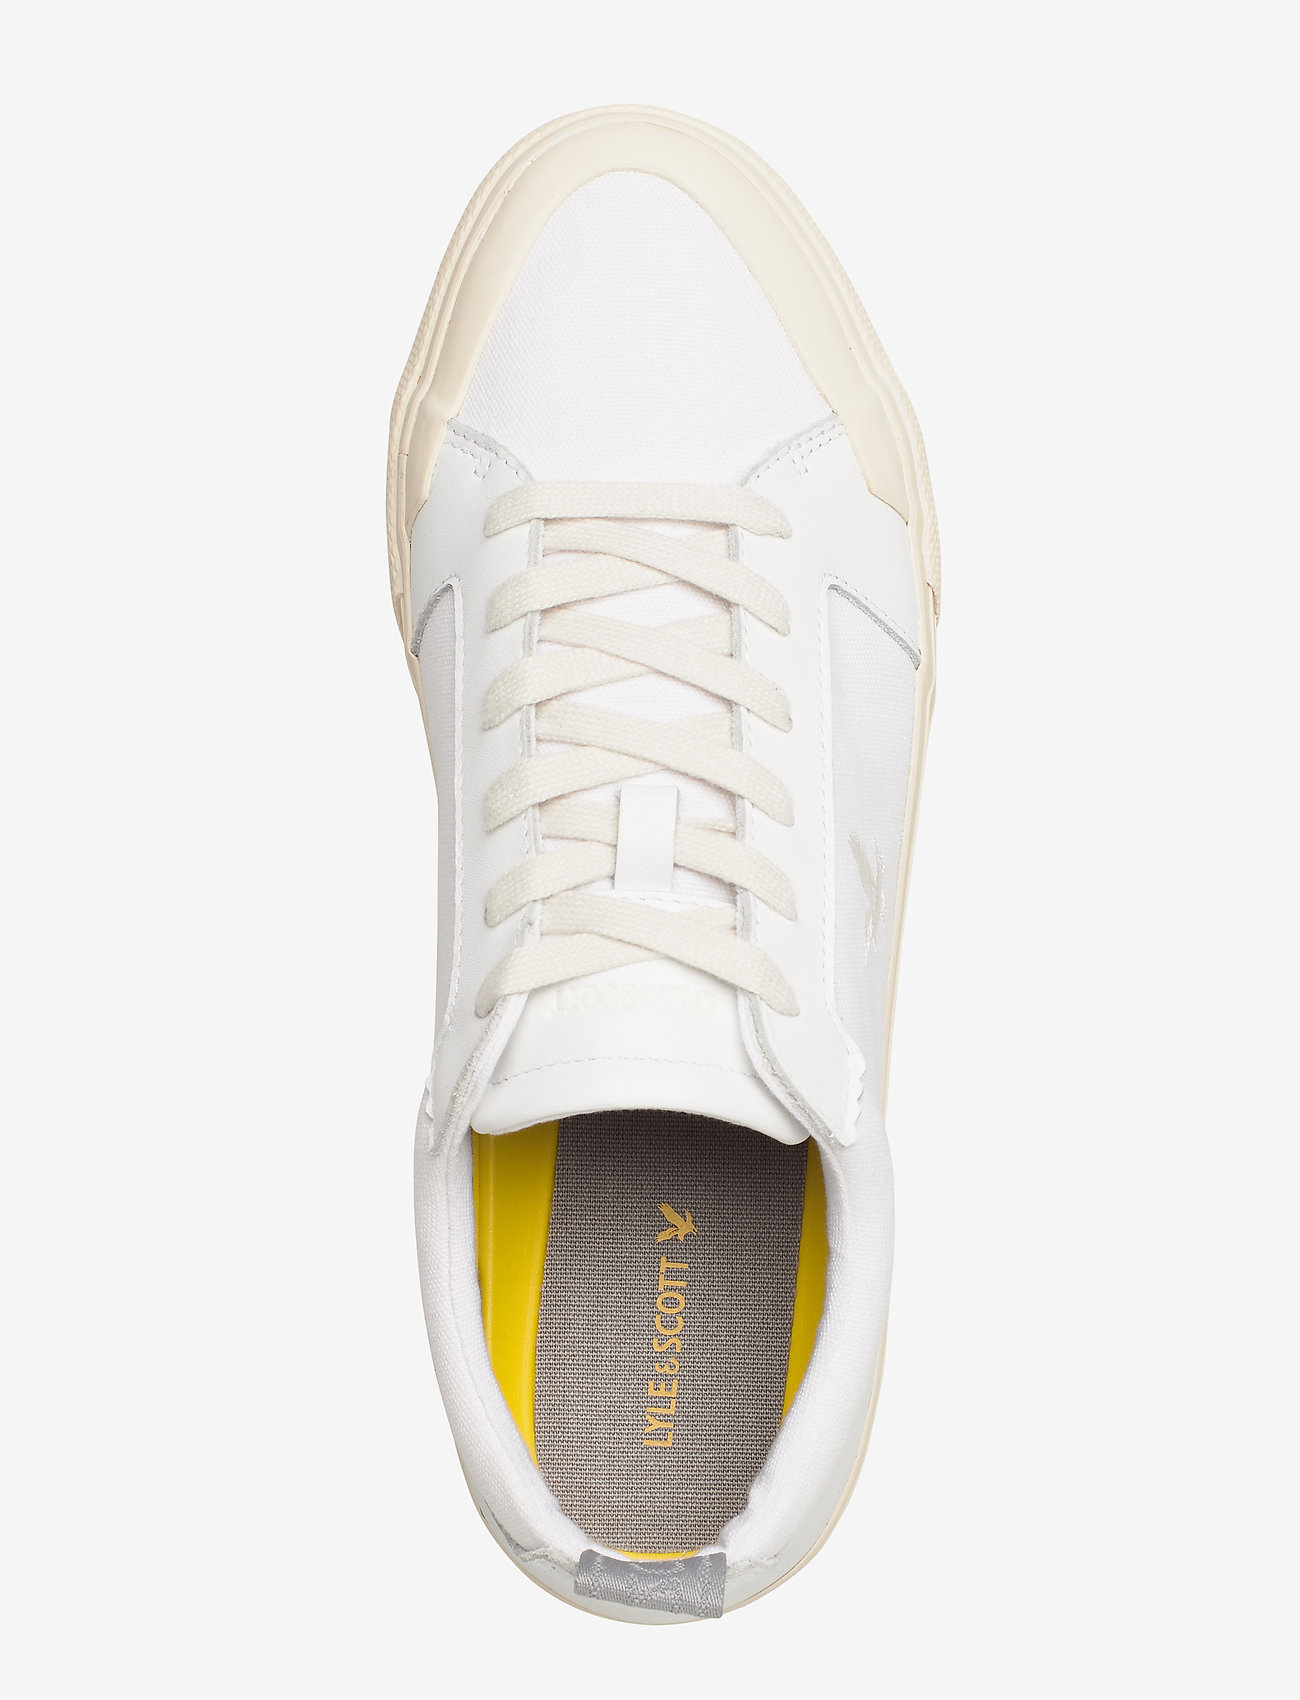 1874 (White) - Lyle & Scott